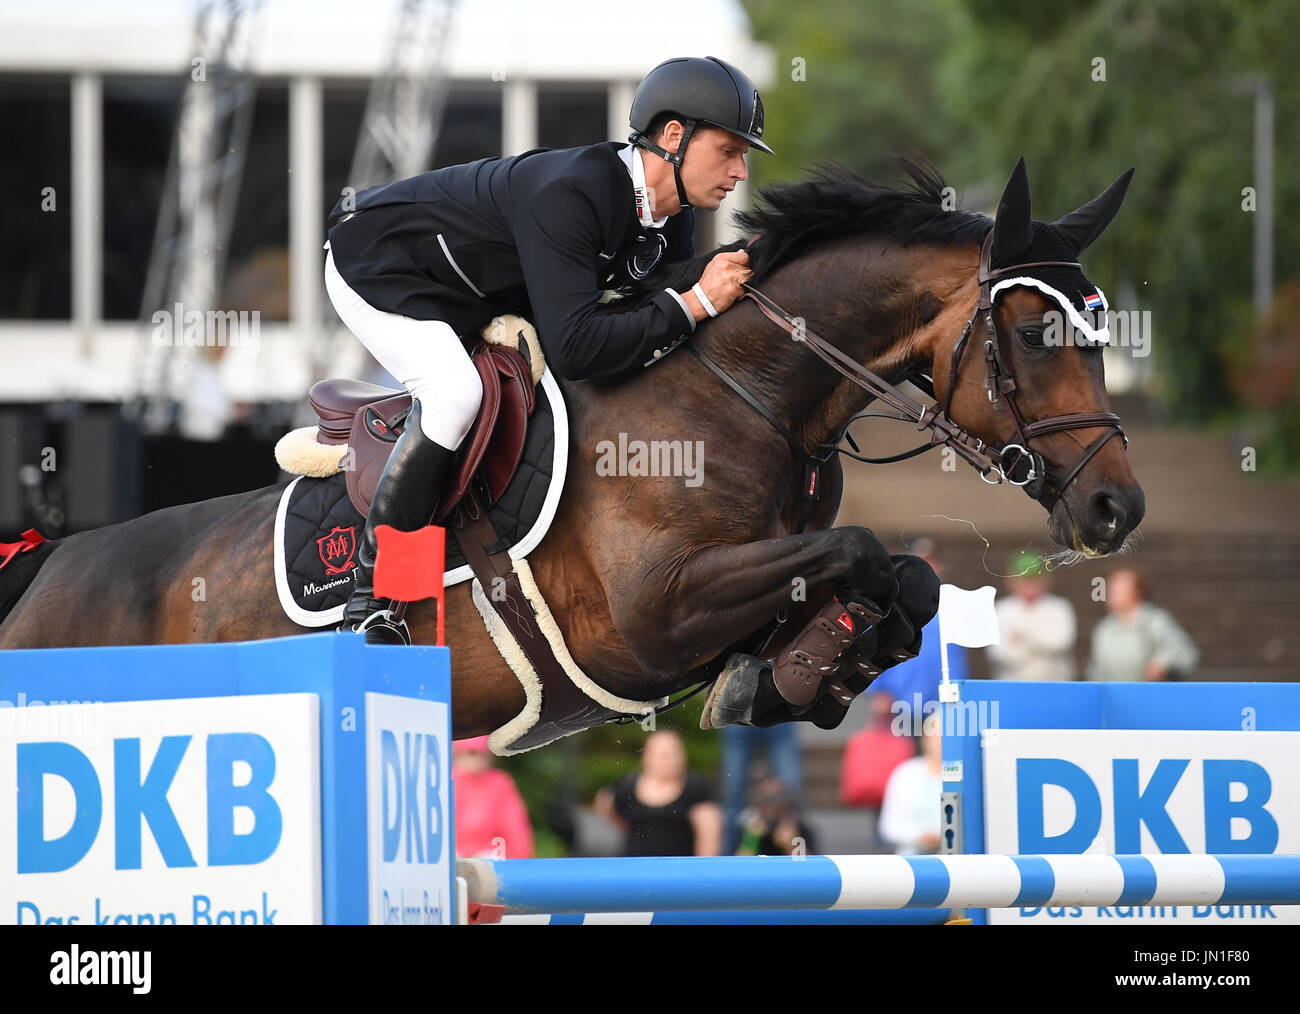 Berlin, Germany. 28th July, 2017. Show jumper Reiter Leopold van Asten in action on his horse Miss Untouchable during the AG-DVAG sponsored event at the Global Champions Tour in Berlin, Germany, 28 July 2017. This year's show jumping competition opened on the 28 July and will run through to the 30 July 2017. Photo: Britta Pedersen/dpa-Zentralbild/ZB/dpa/Alamy Live News - Stock Image